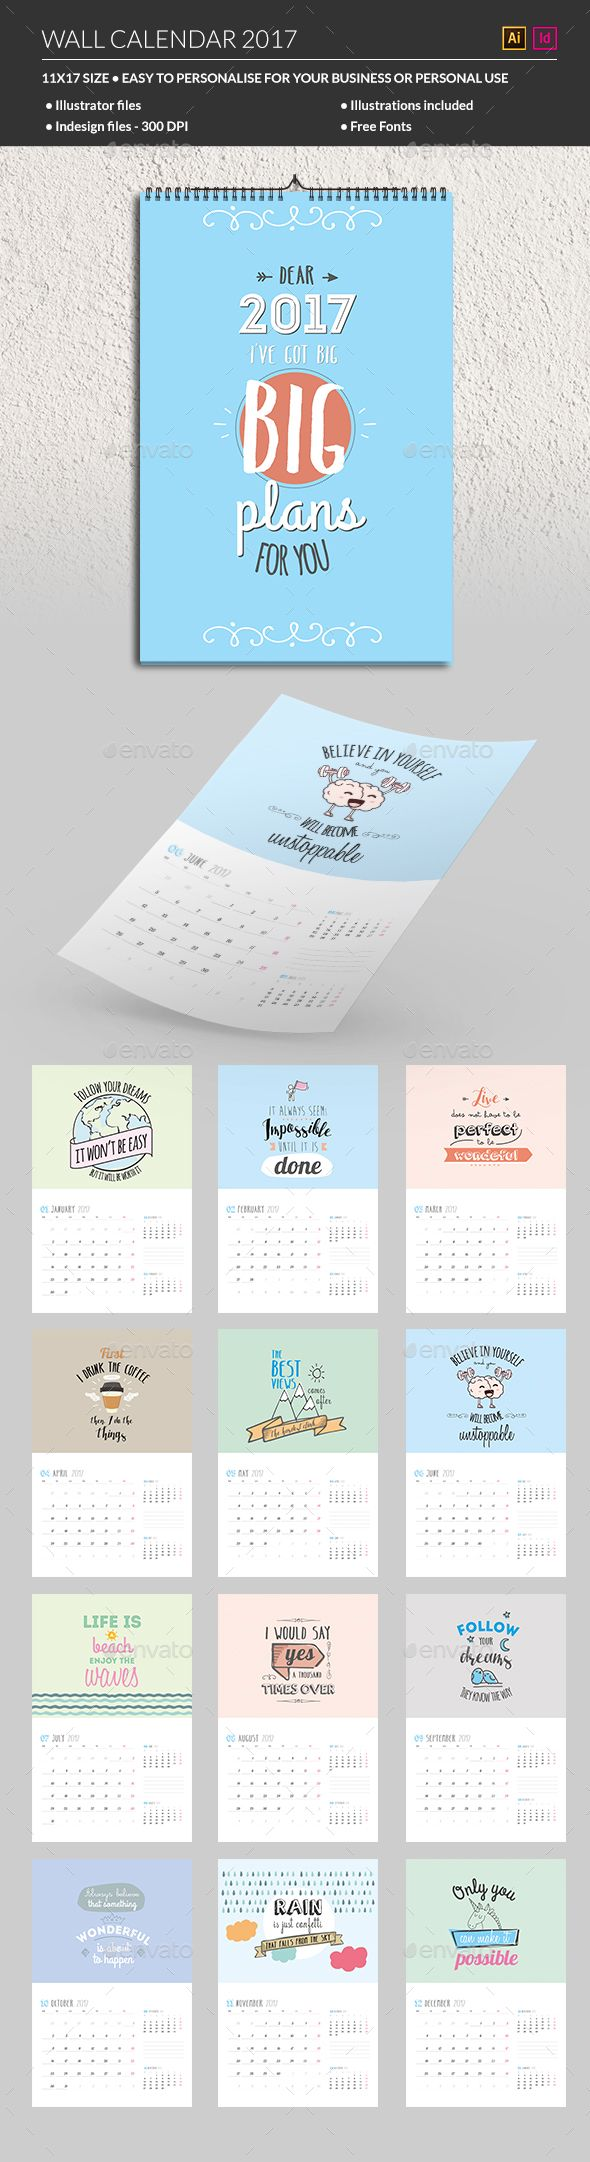 Wall Calendar 2017 Template Vector EPS, InDesign INDD